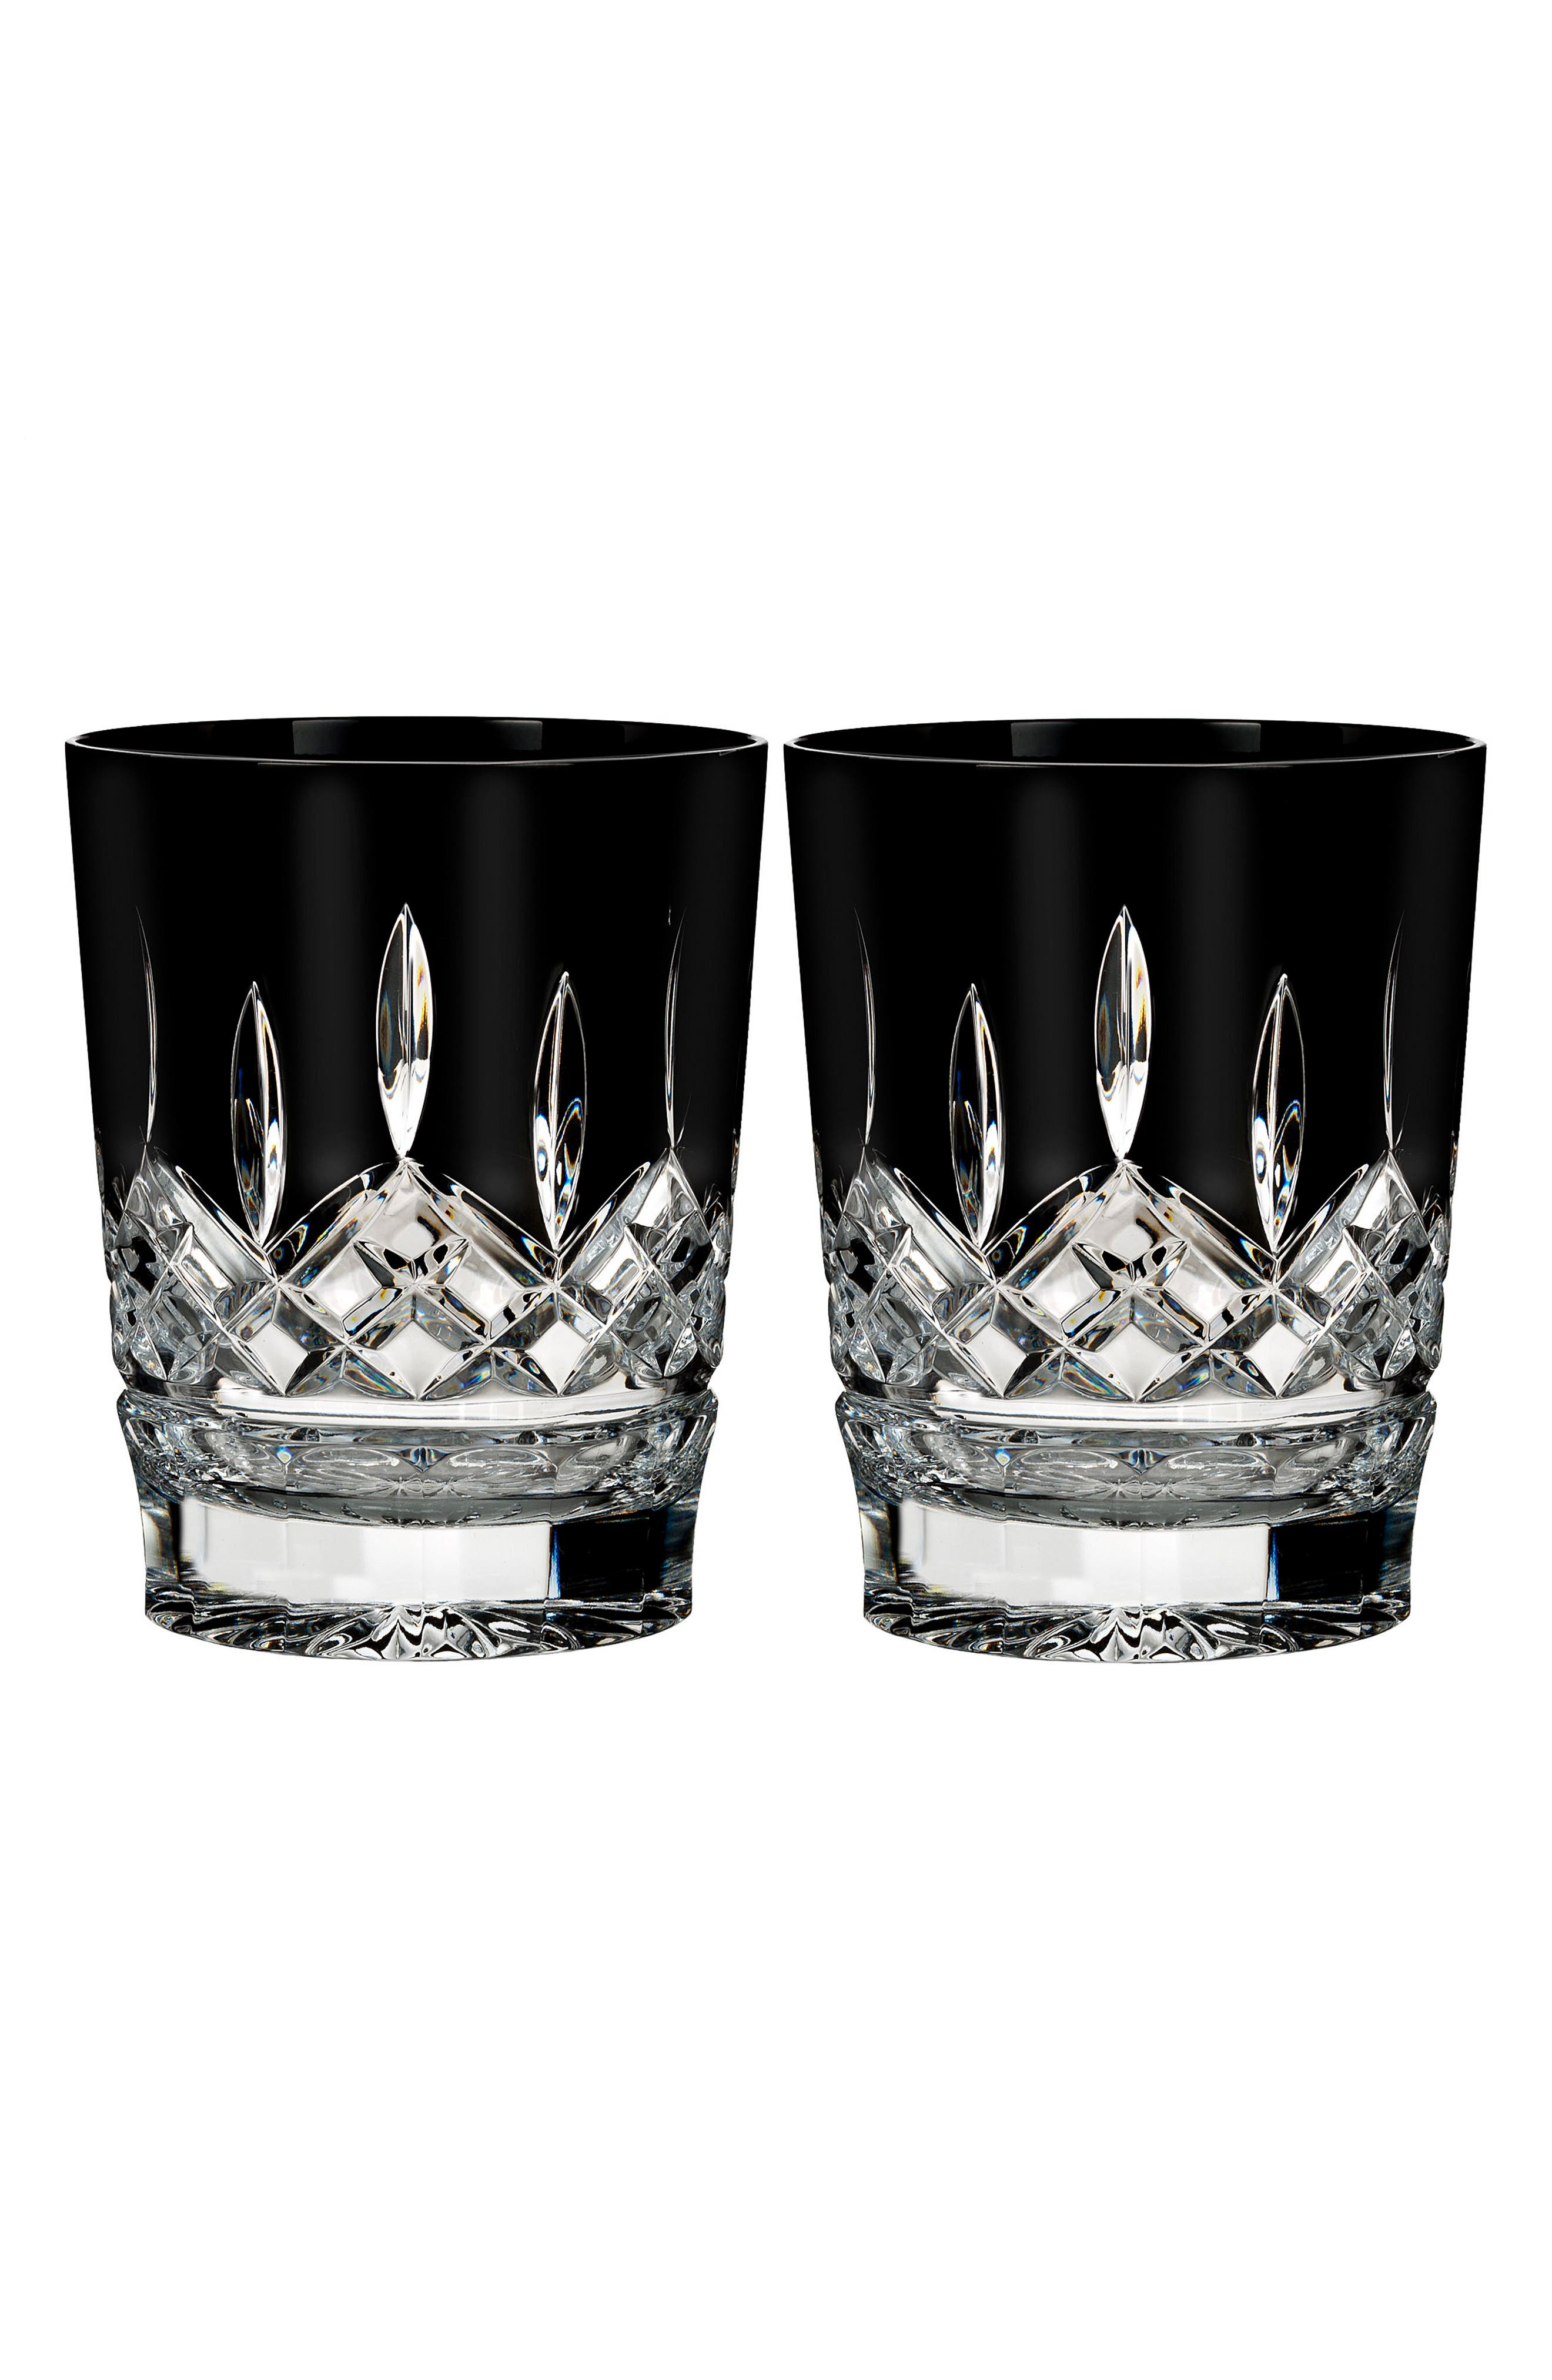 Lismore Diamond Set of 2 Black Lead Crystal Double Old Fashioned Glasses,                             Main thumbnail 1, color,                             Crystal